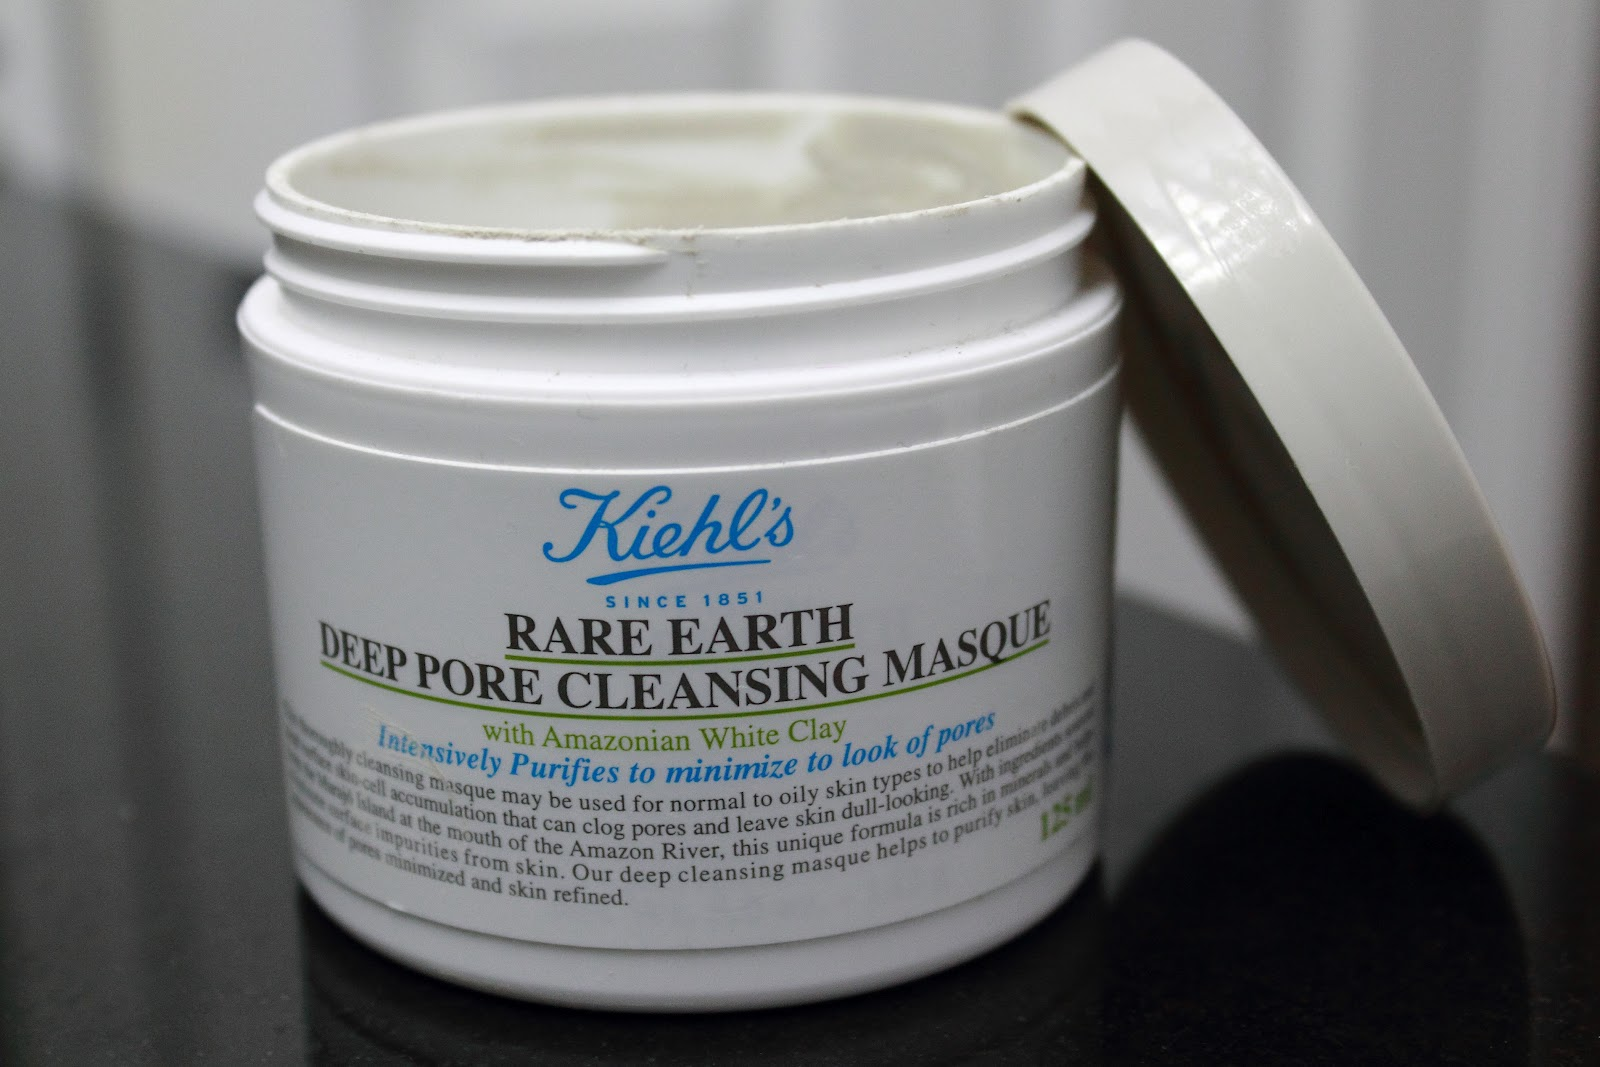 kiehls masque review